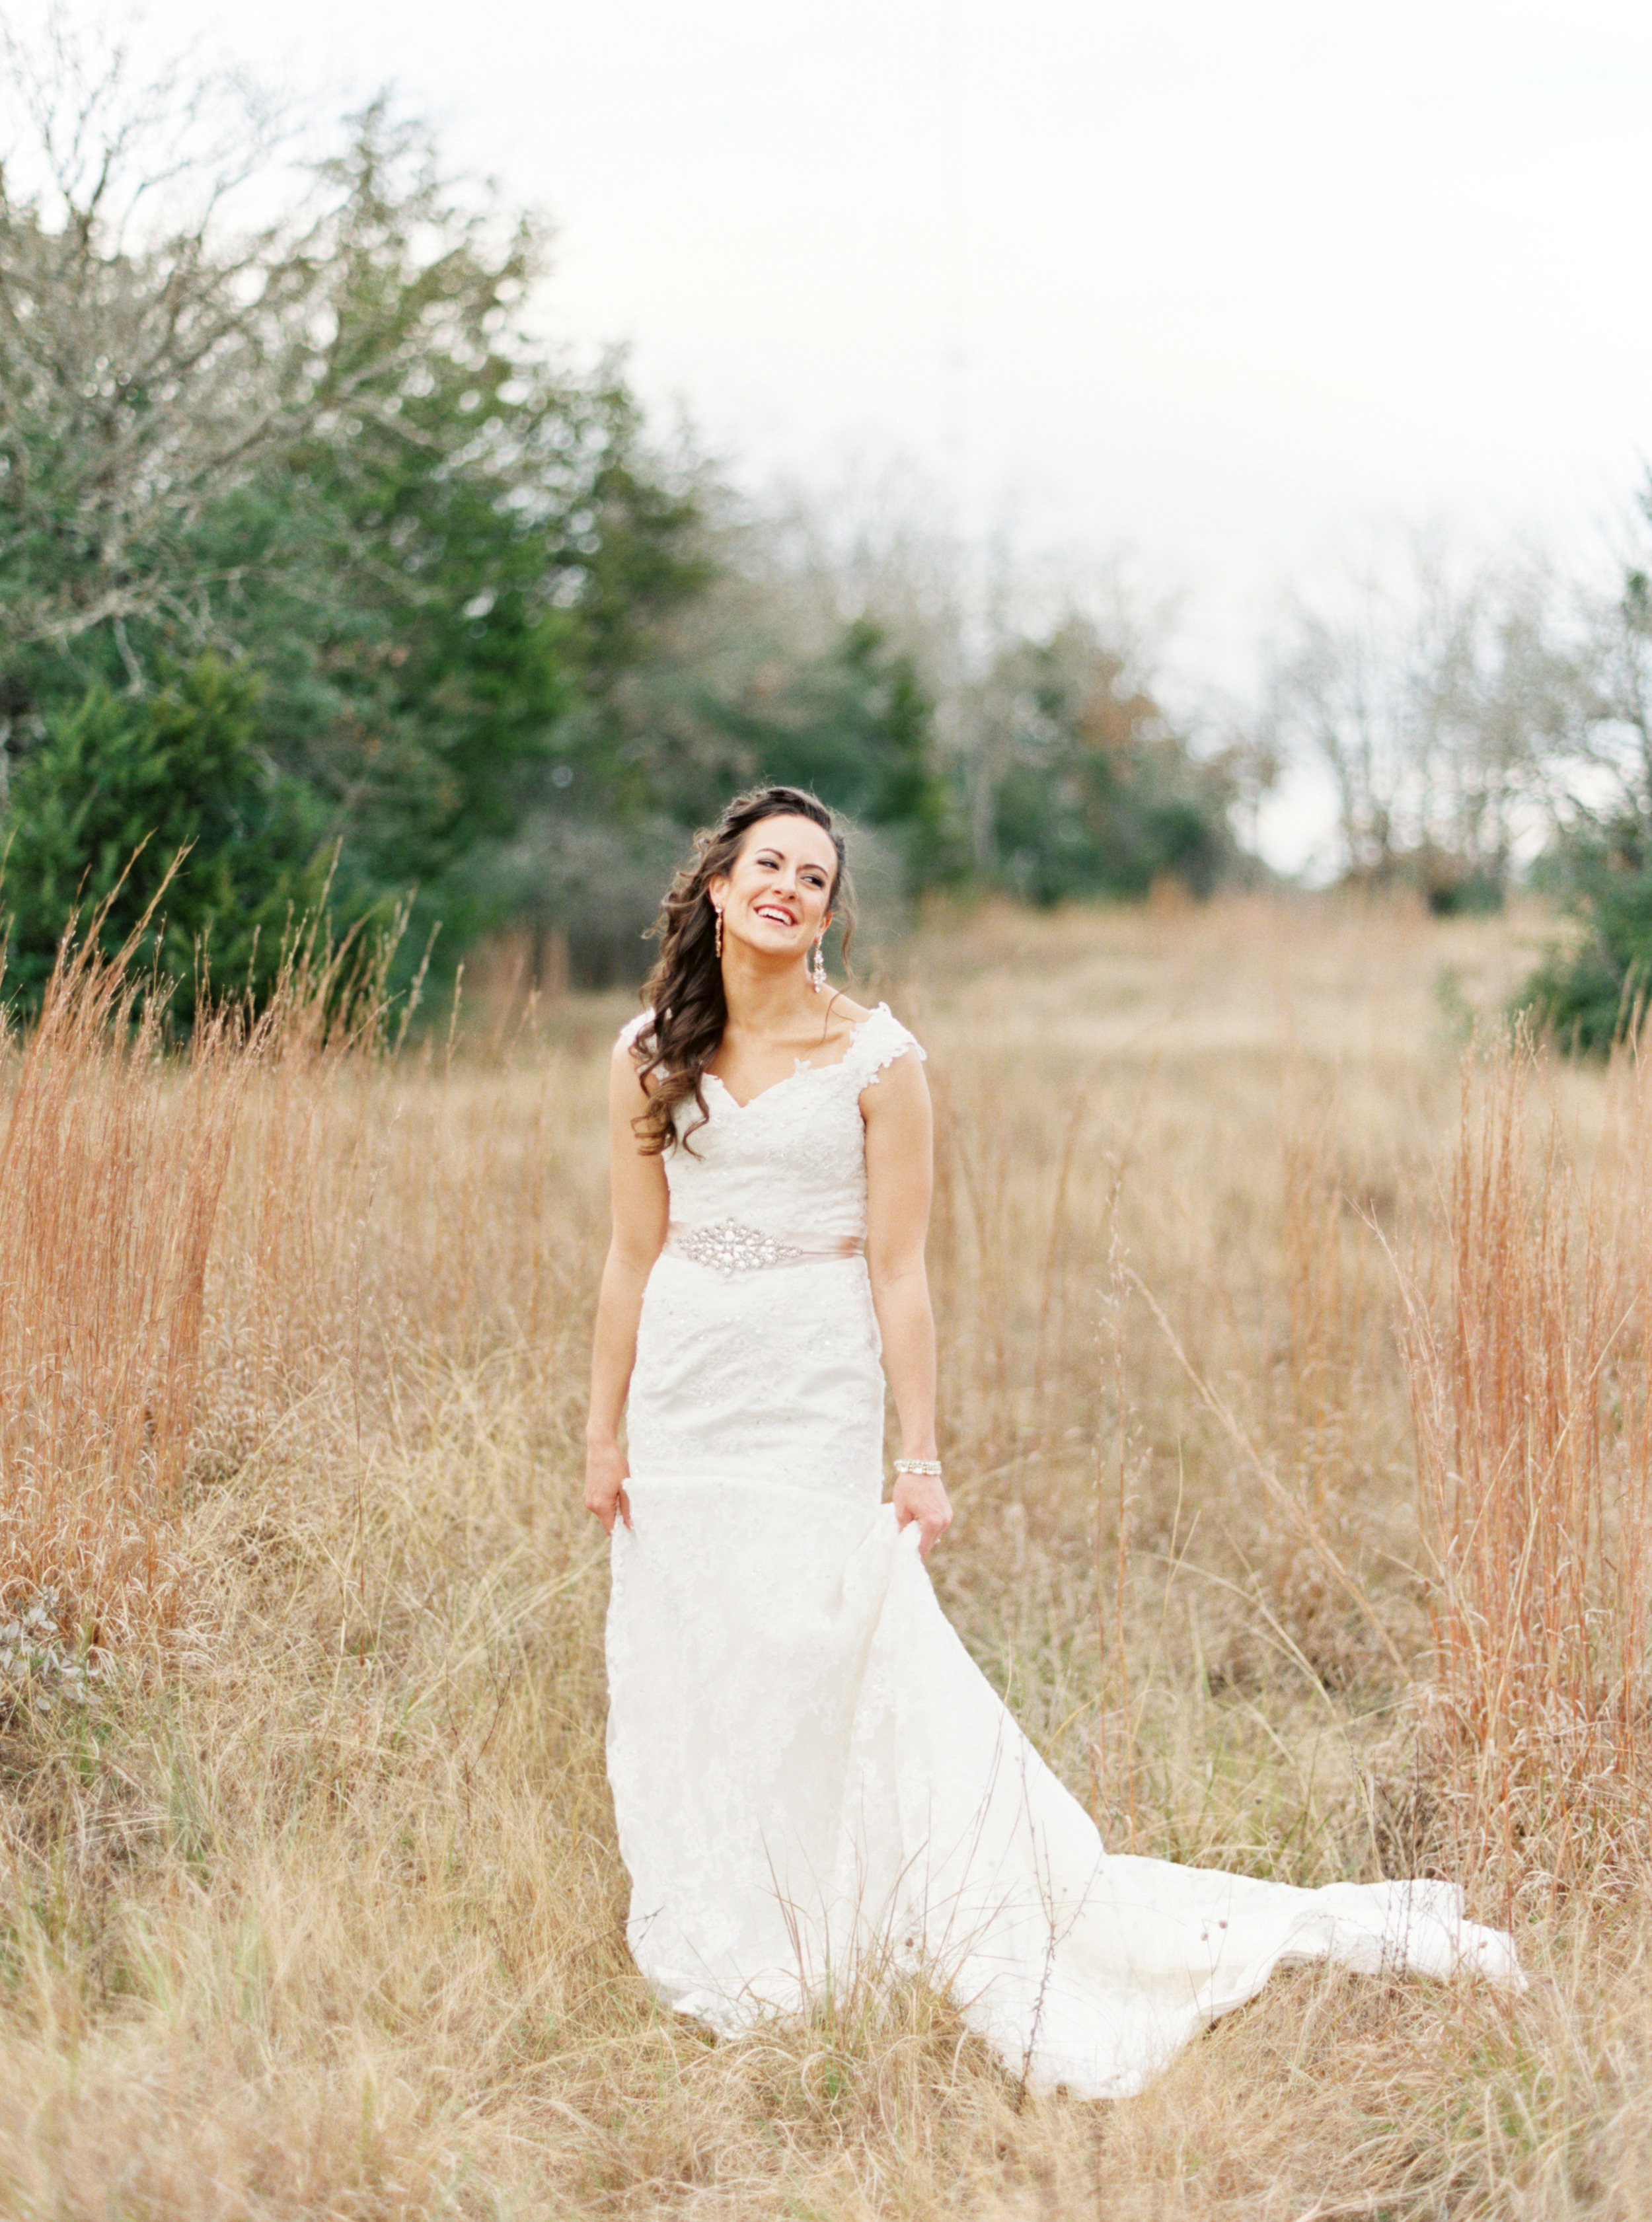 Sarah Best Photography - Emily's Bridals-123.jpg